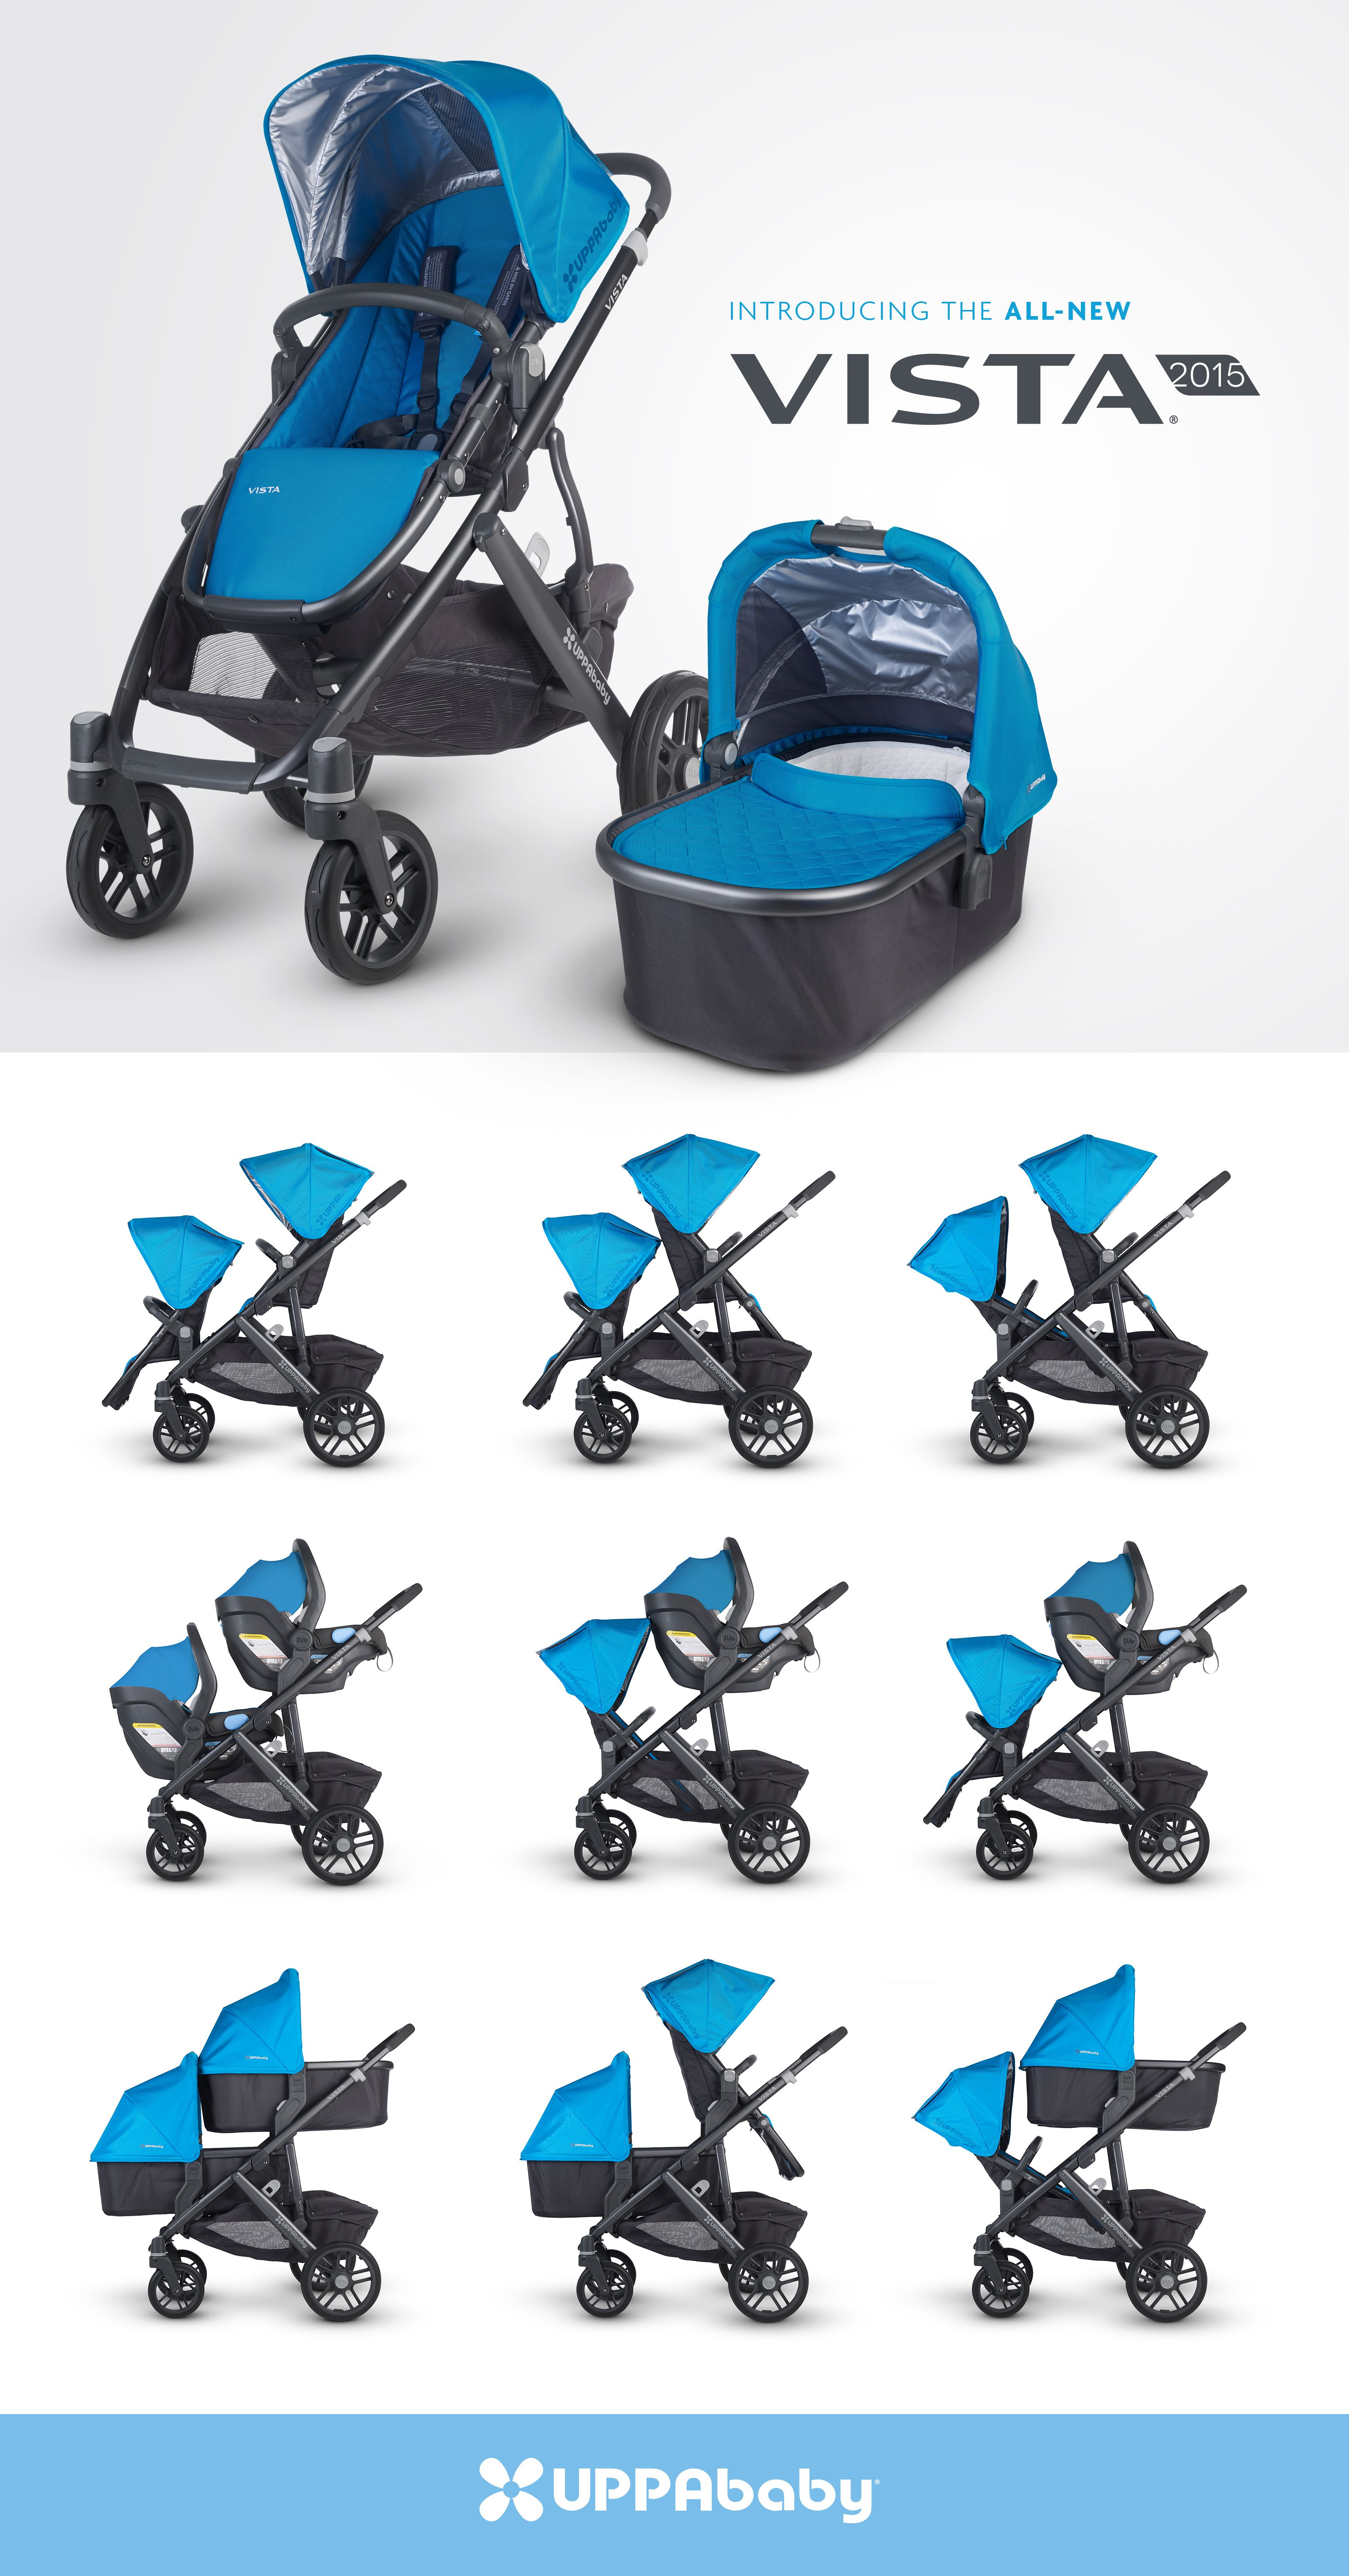 2015 UPPAbaby Vista Stroller (shown in Blue